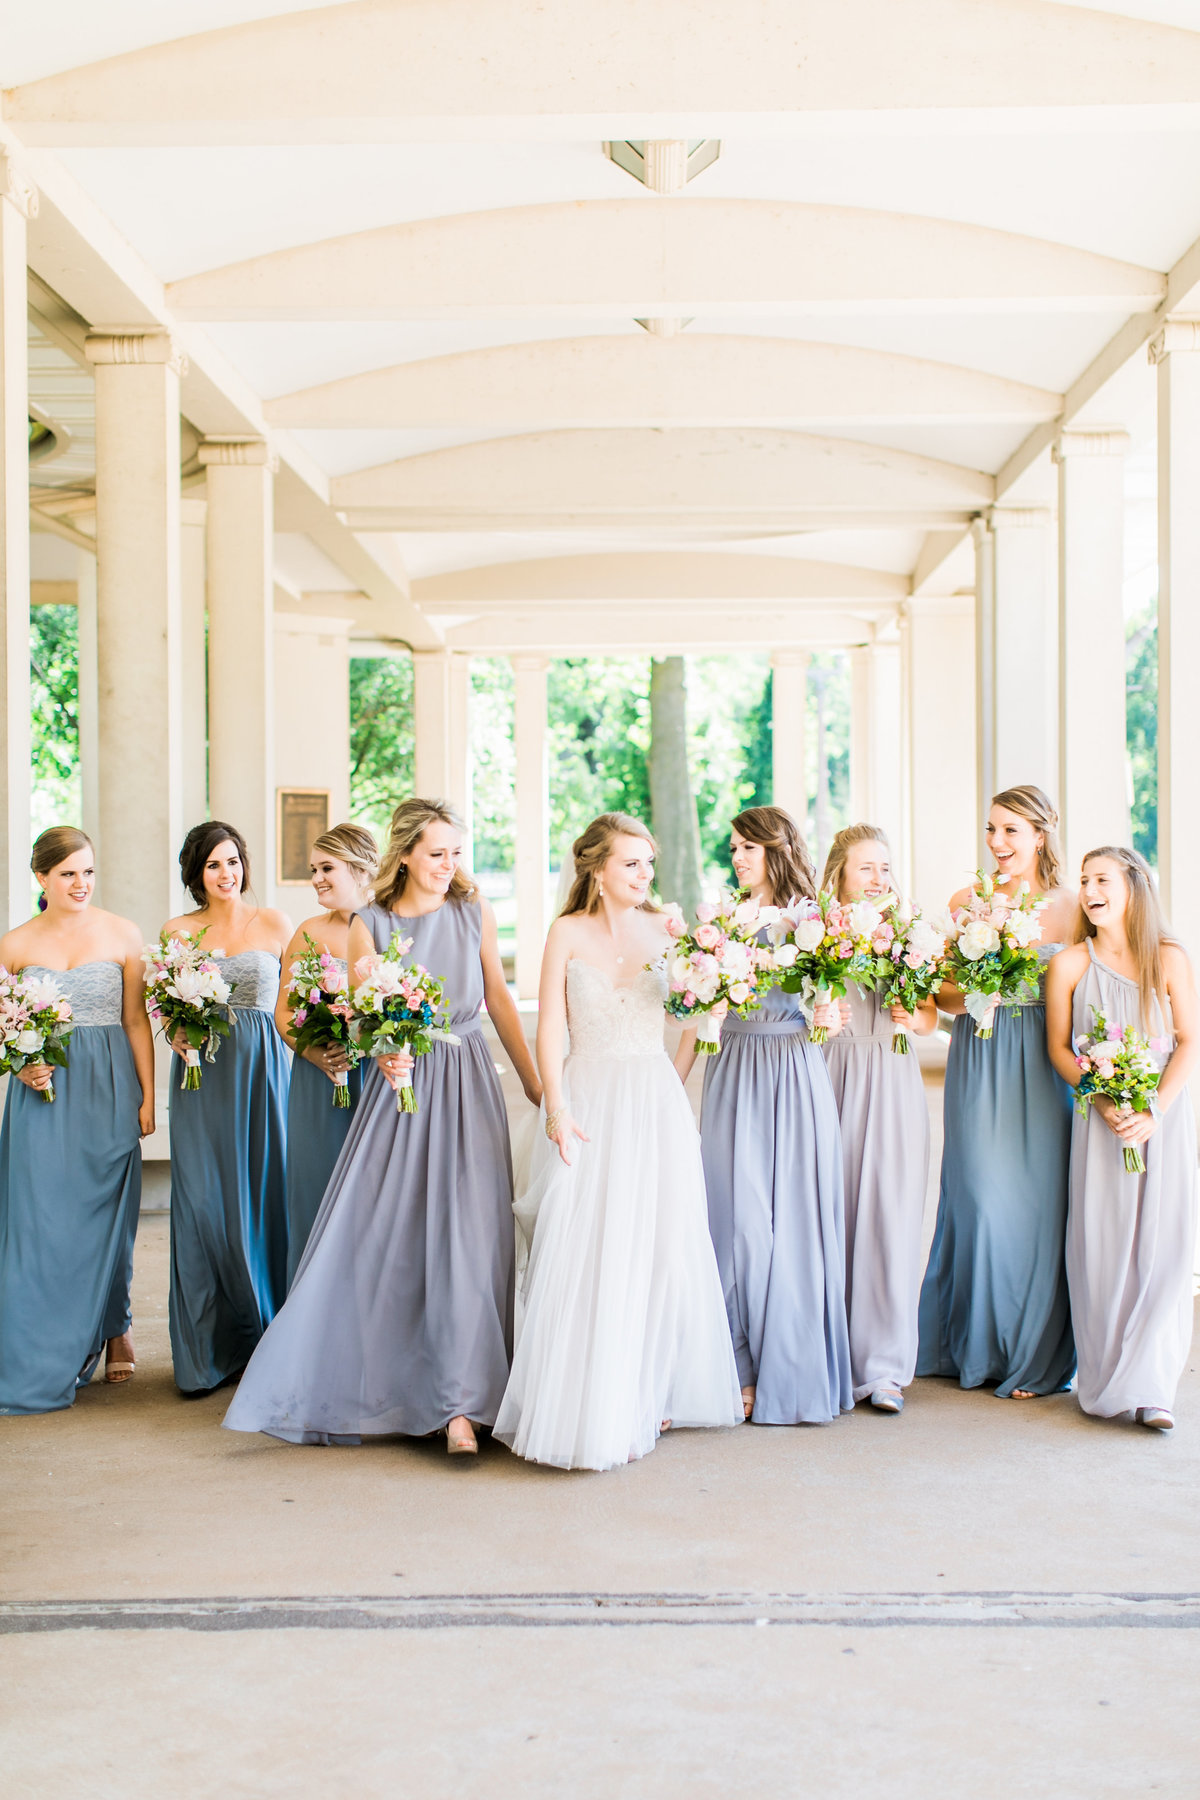 StLouisZooWedding_ChloeBrian_CatherineRhodesPhotography18-Edit